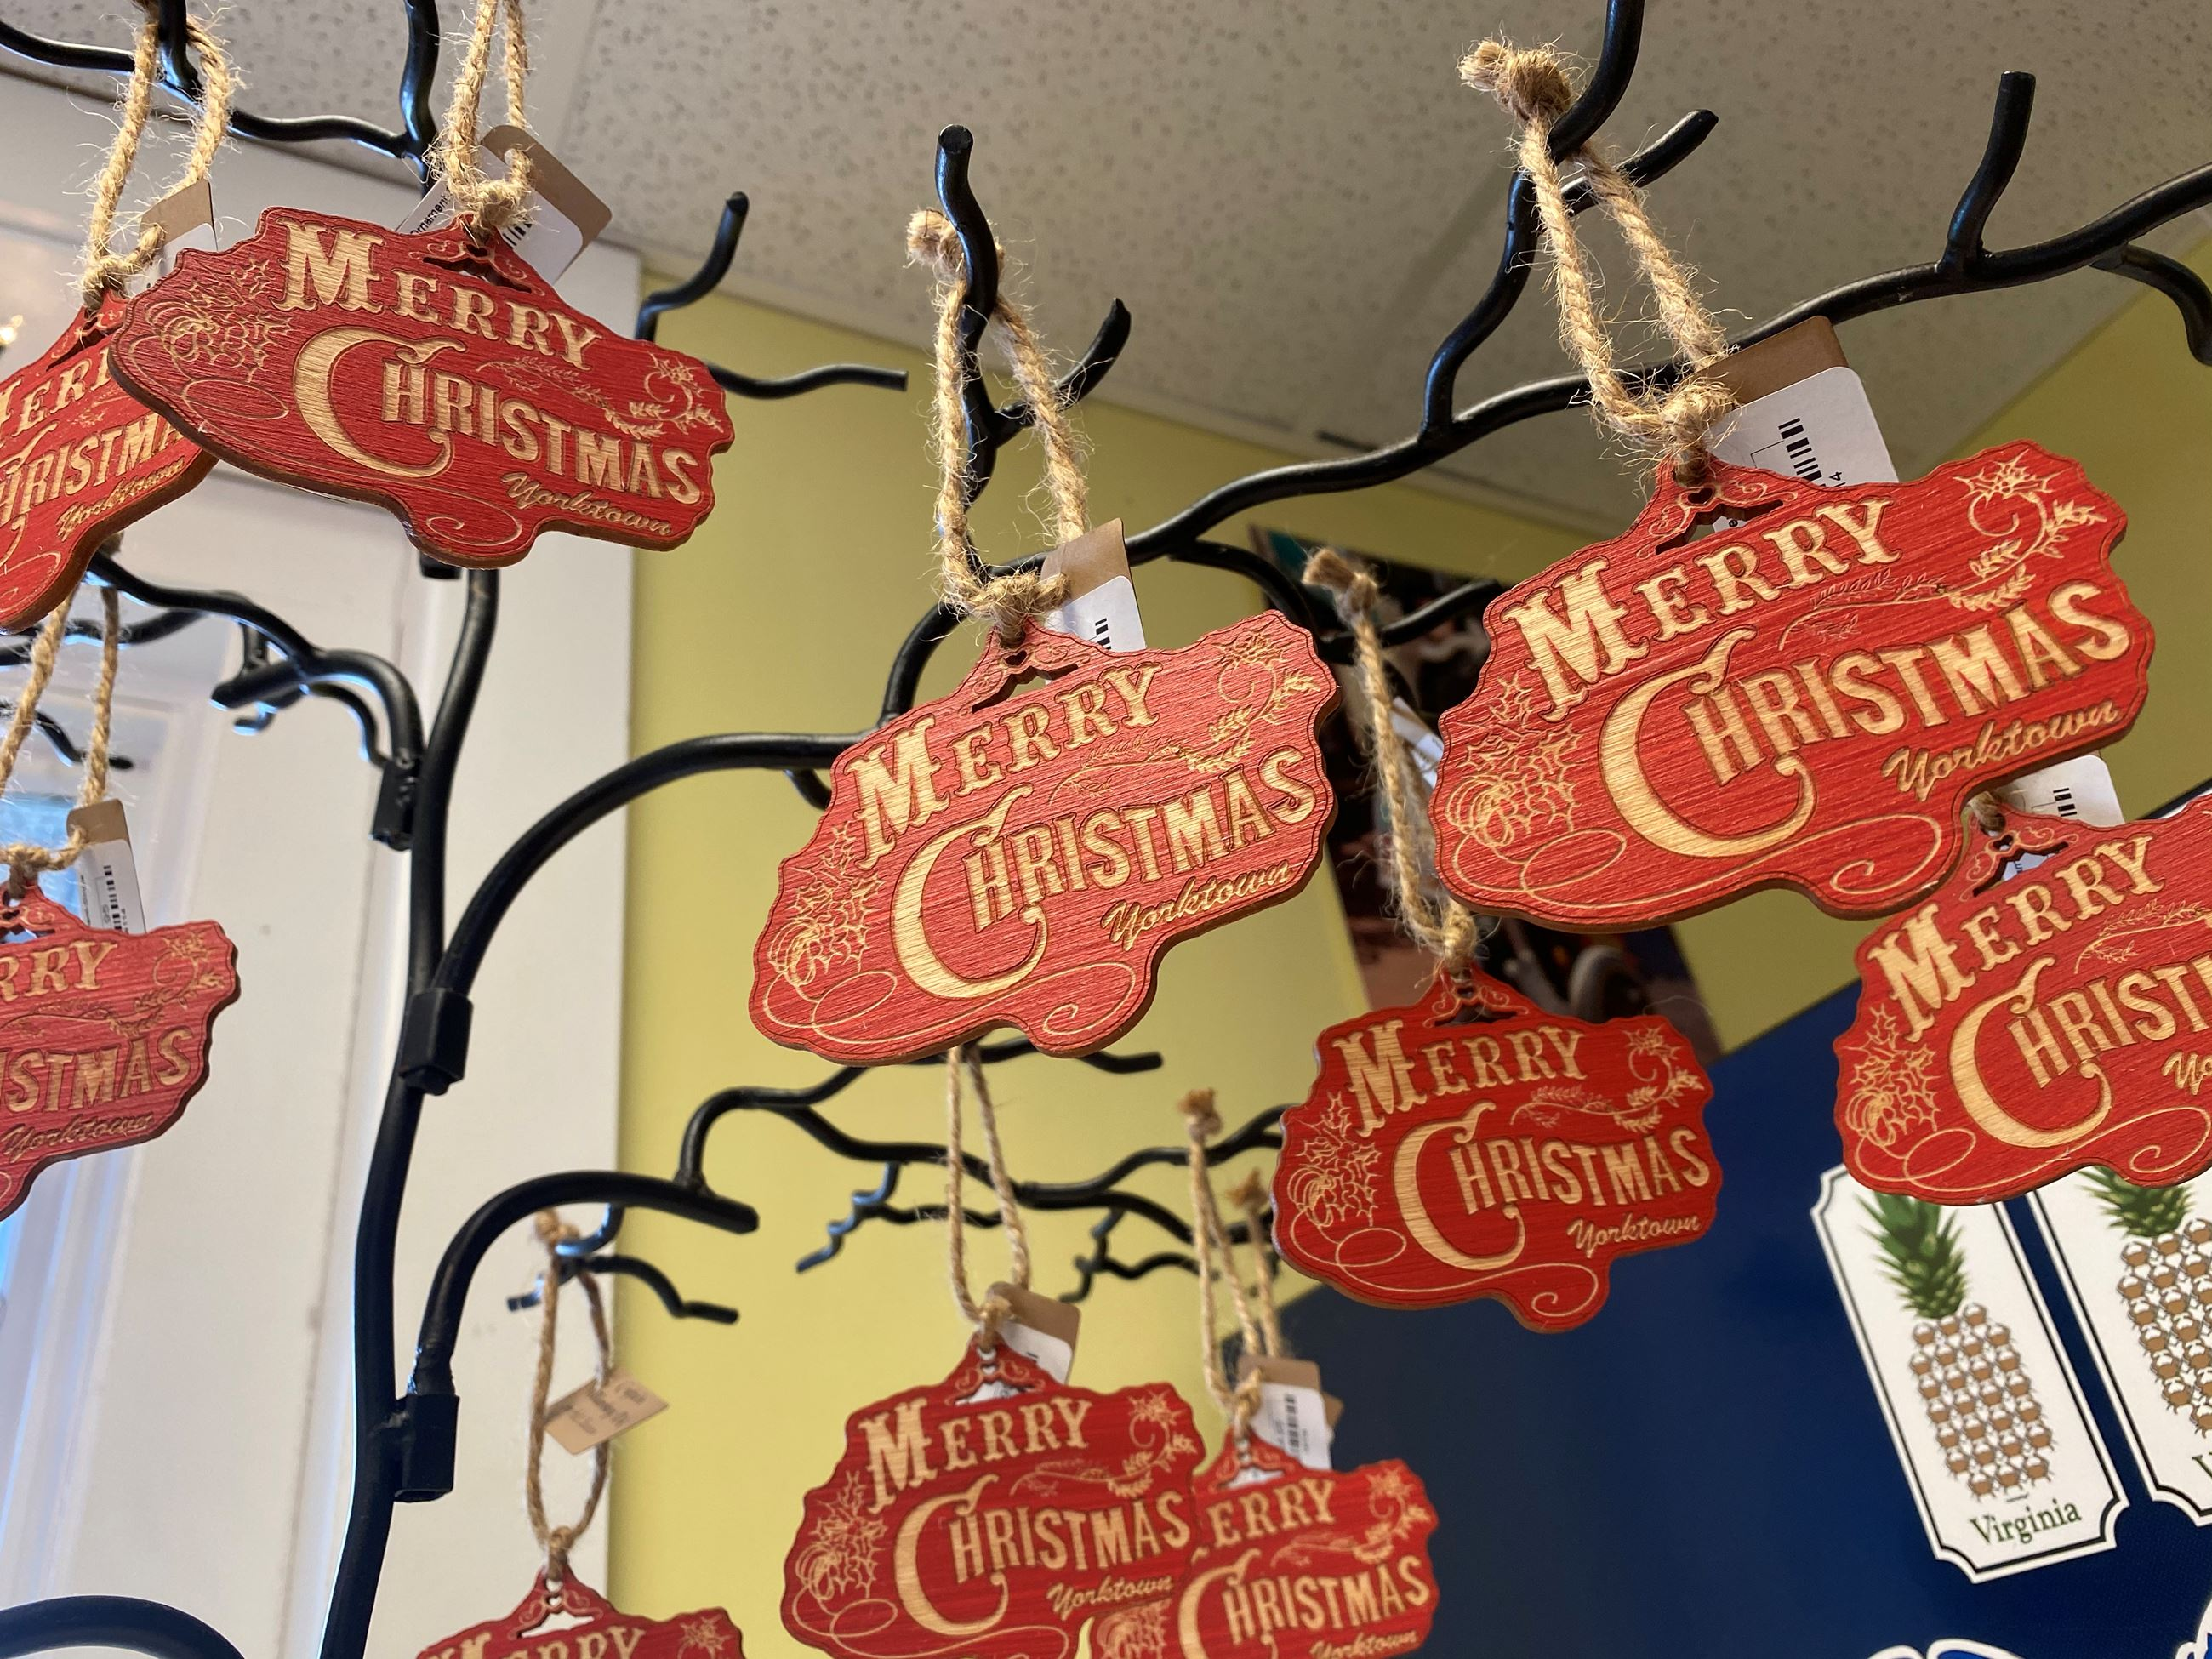 Merry Christmas Ornaments at Patriot Tours and Provisions